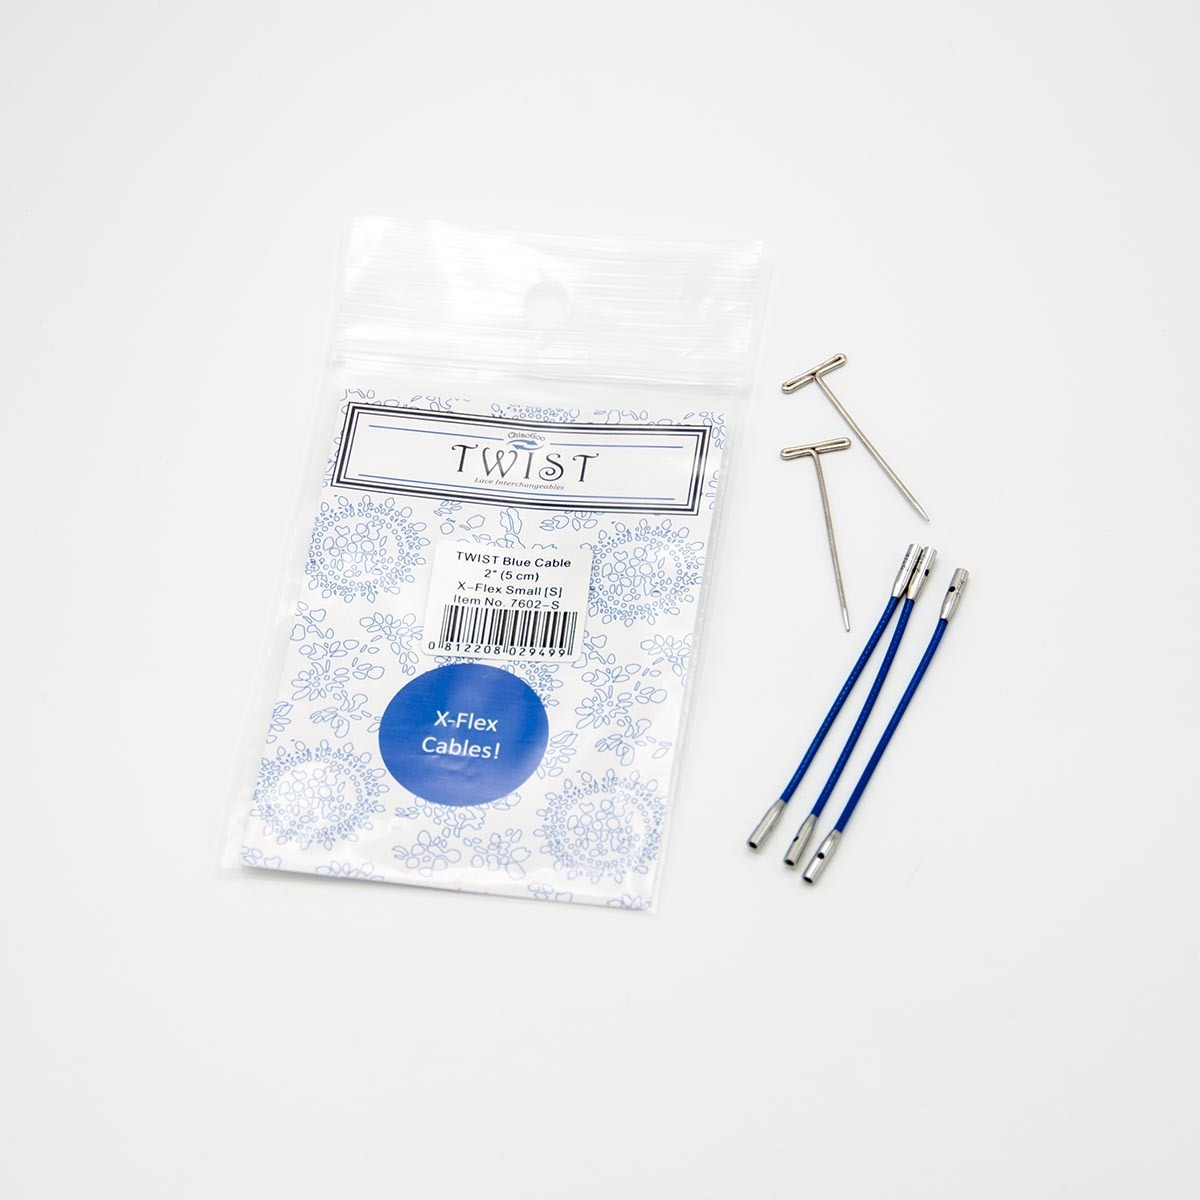 Леска Twist x-flex blue cable 5см, ChiaoGoo